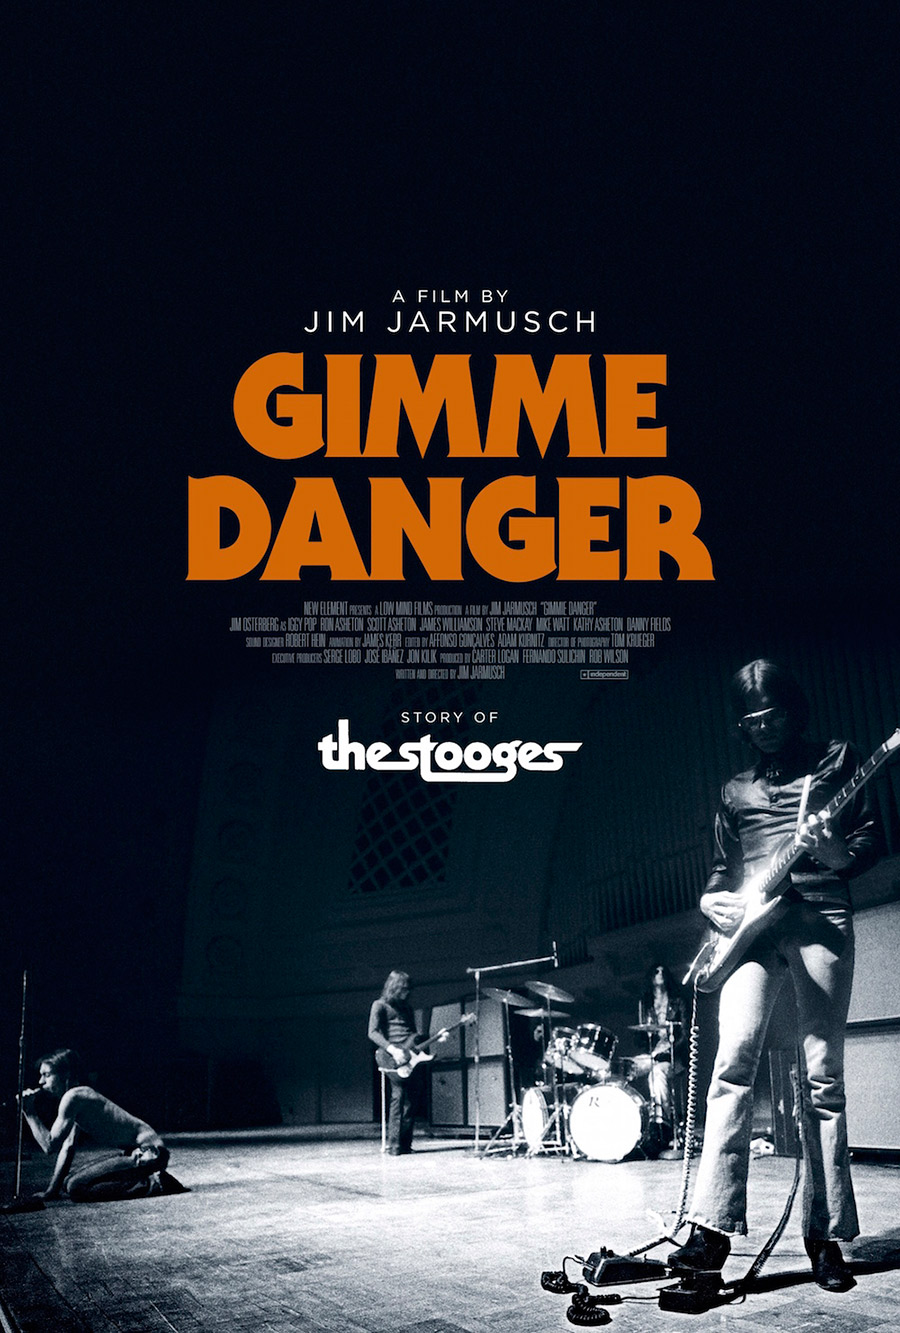 Gimme Danger documentary movie poster